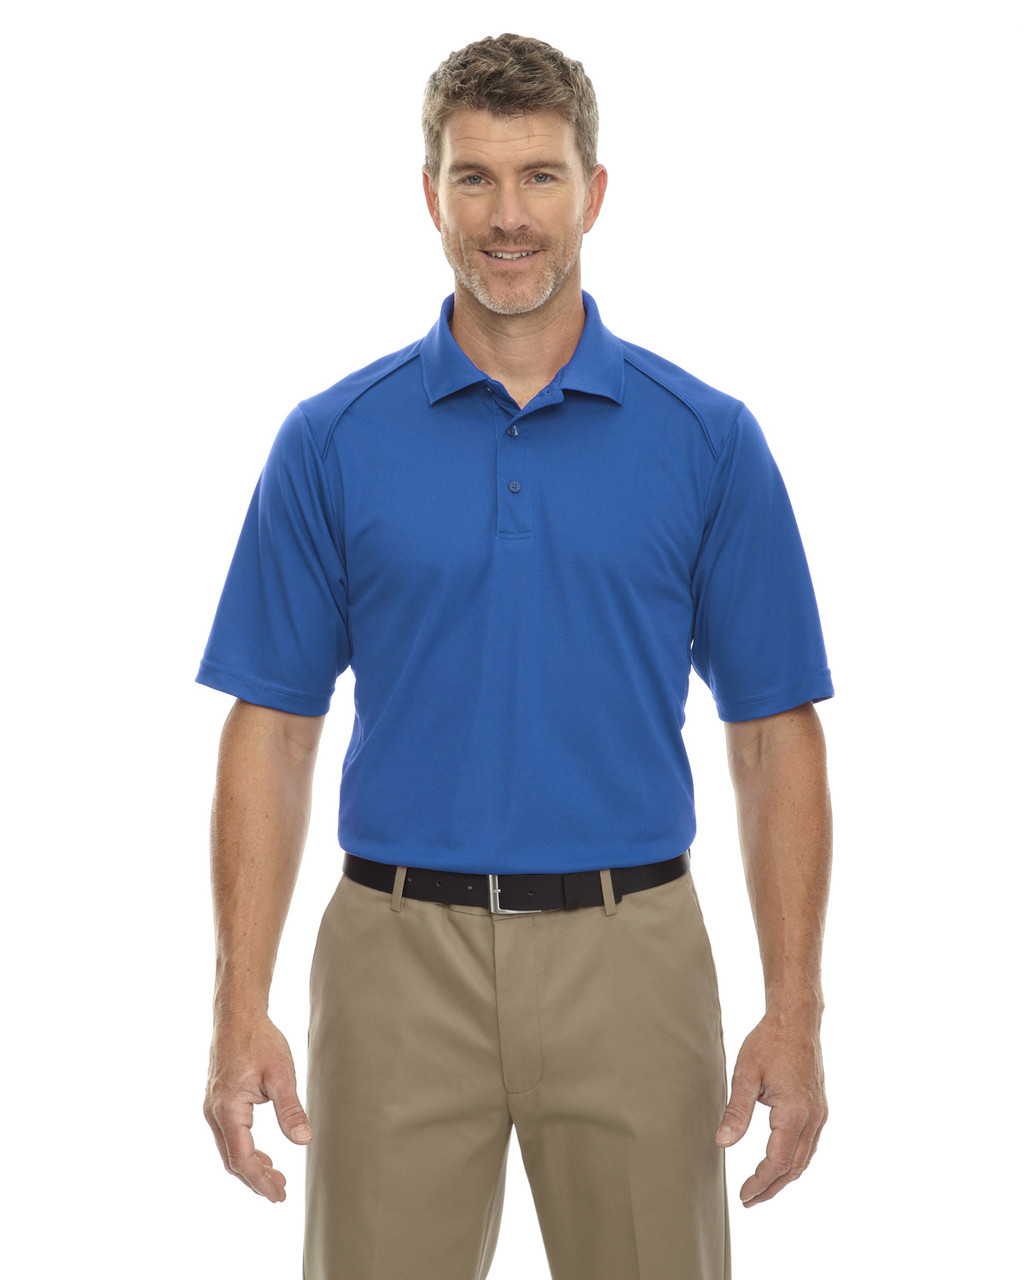 True Royal - 85108 Ash City - Extreme Eperformance Men's Shield Short-Sleeve Polo Shirt